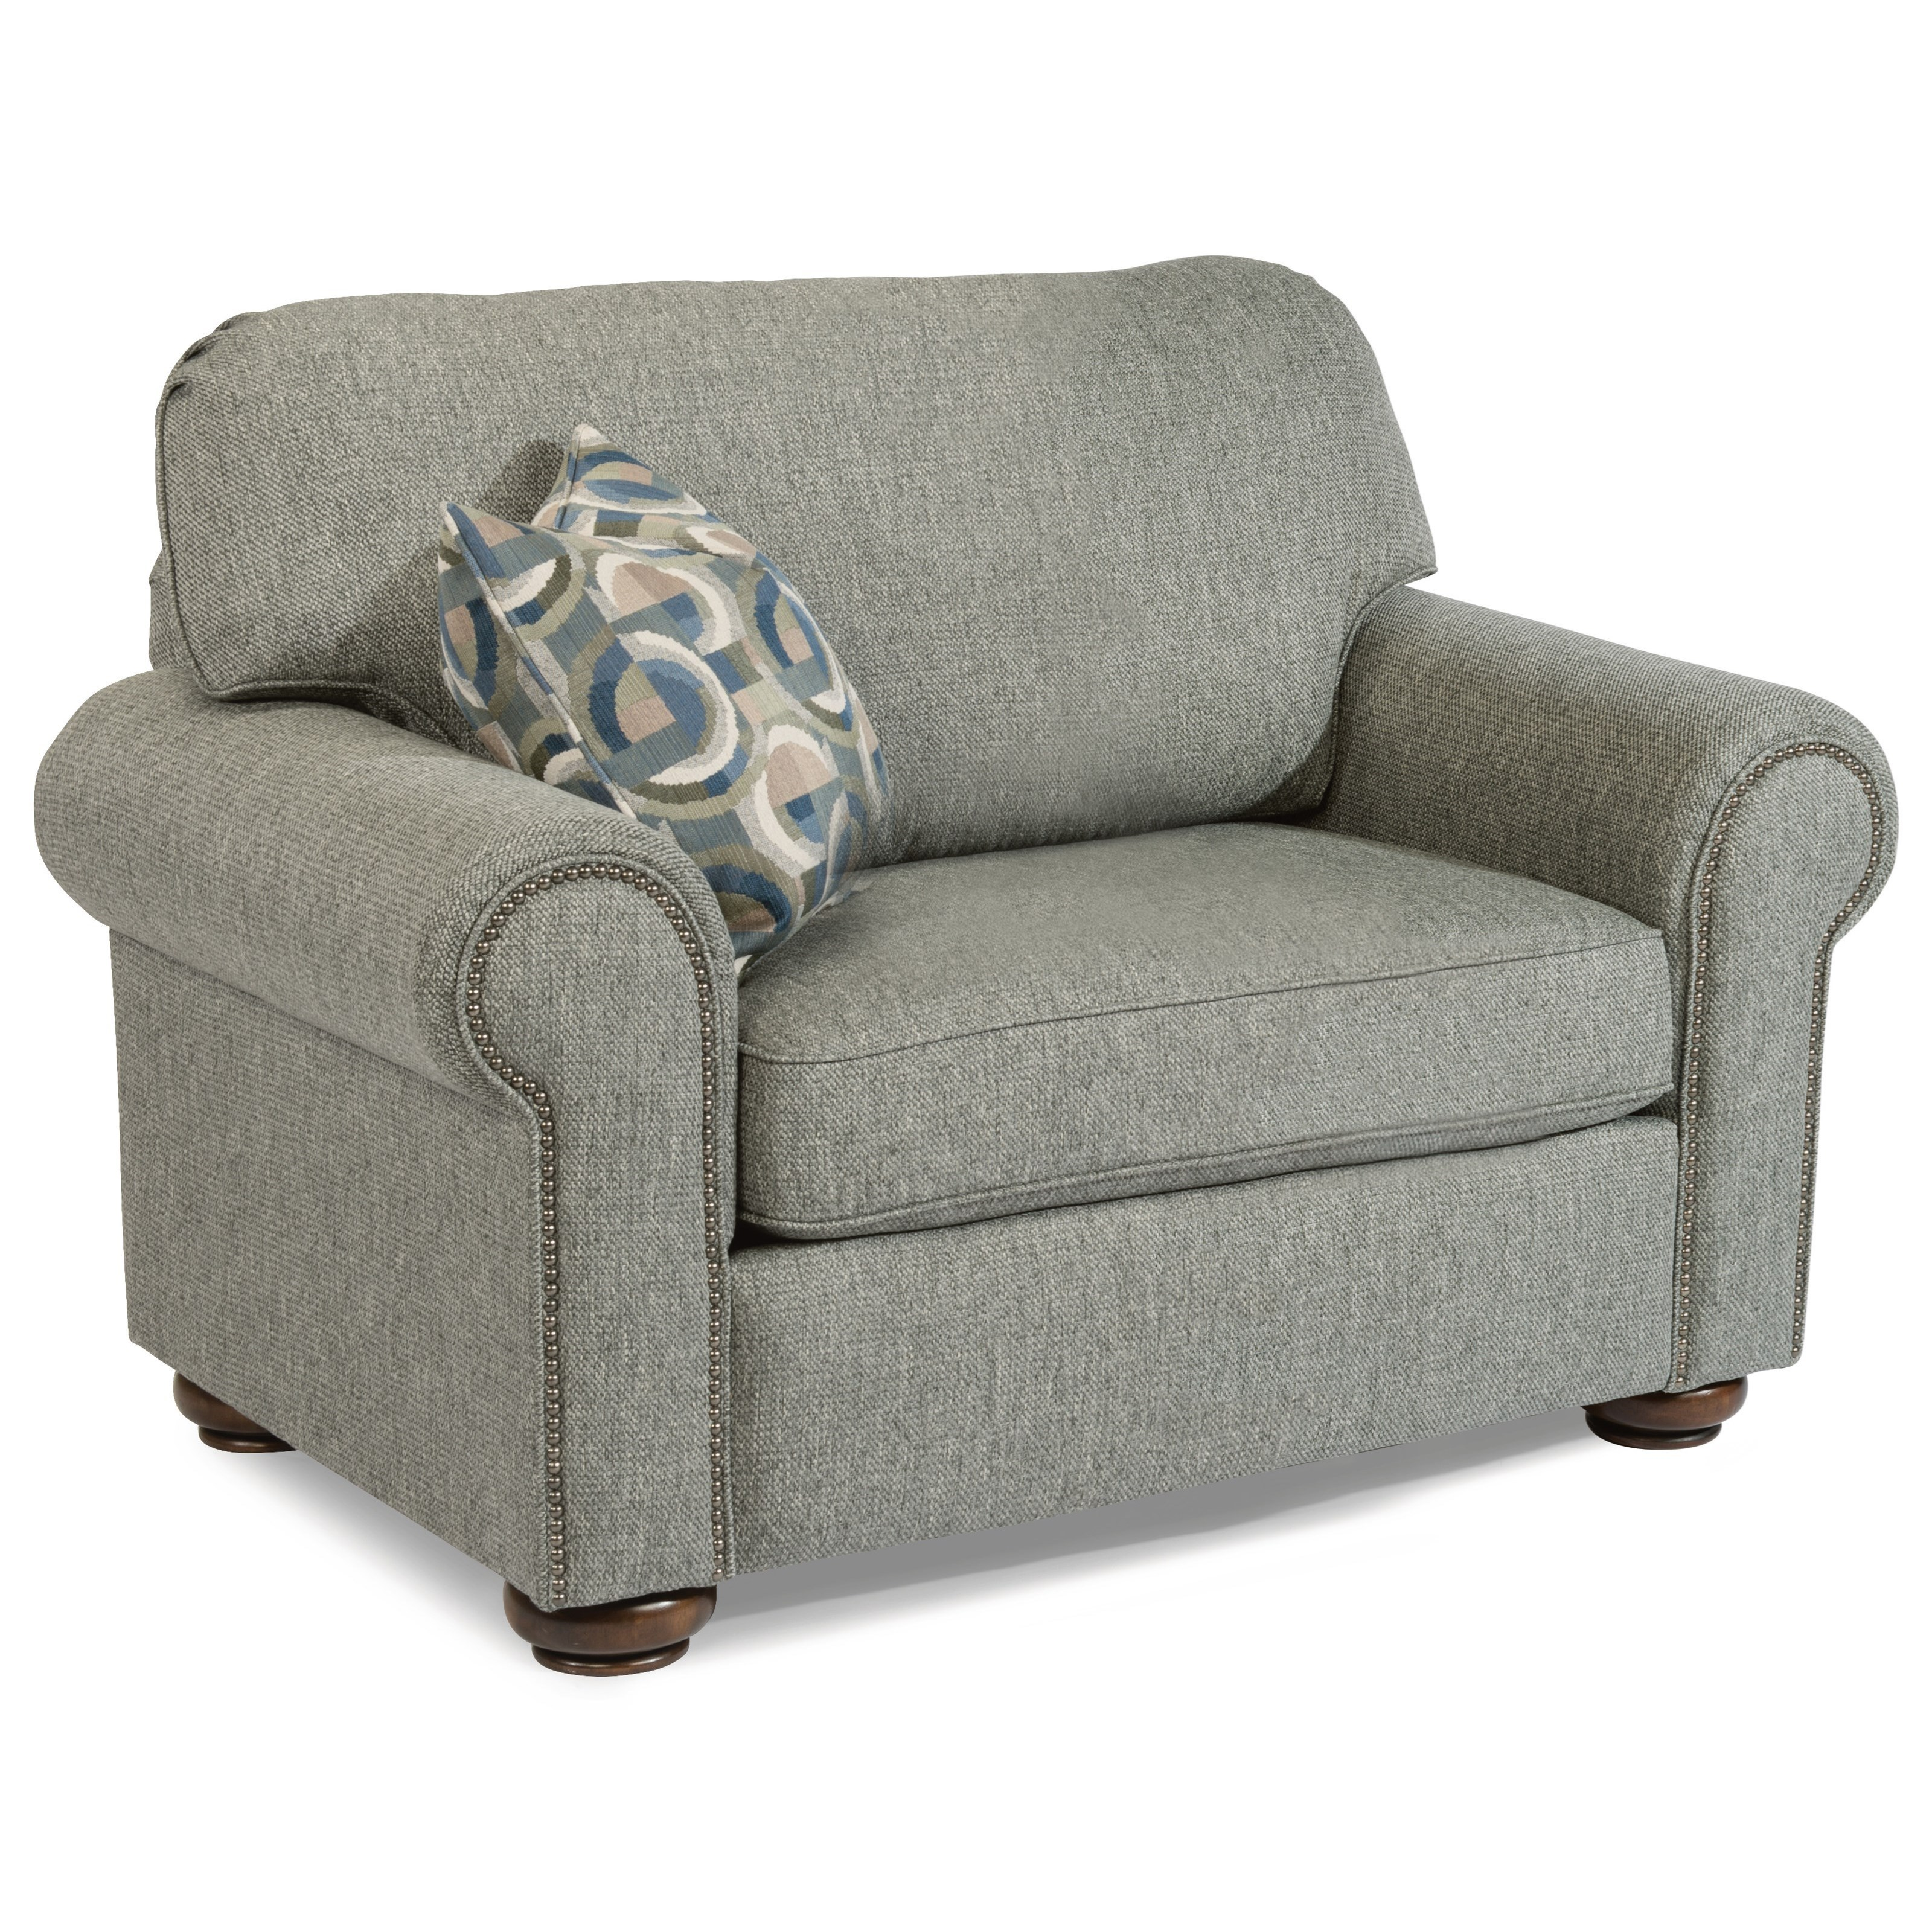 Preston Chair and a Half by Flexsteel at Steger's Furniture